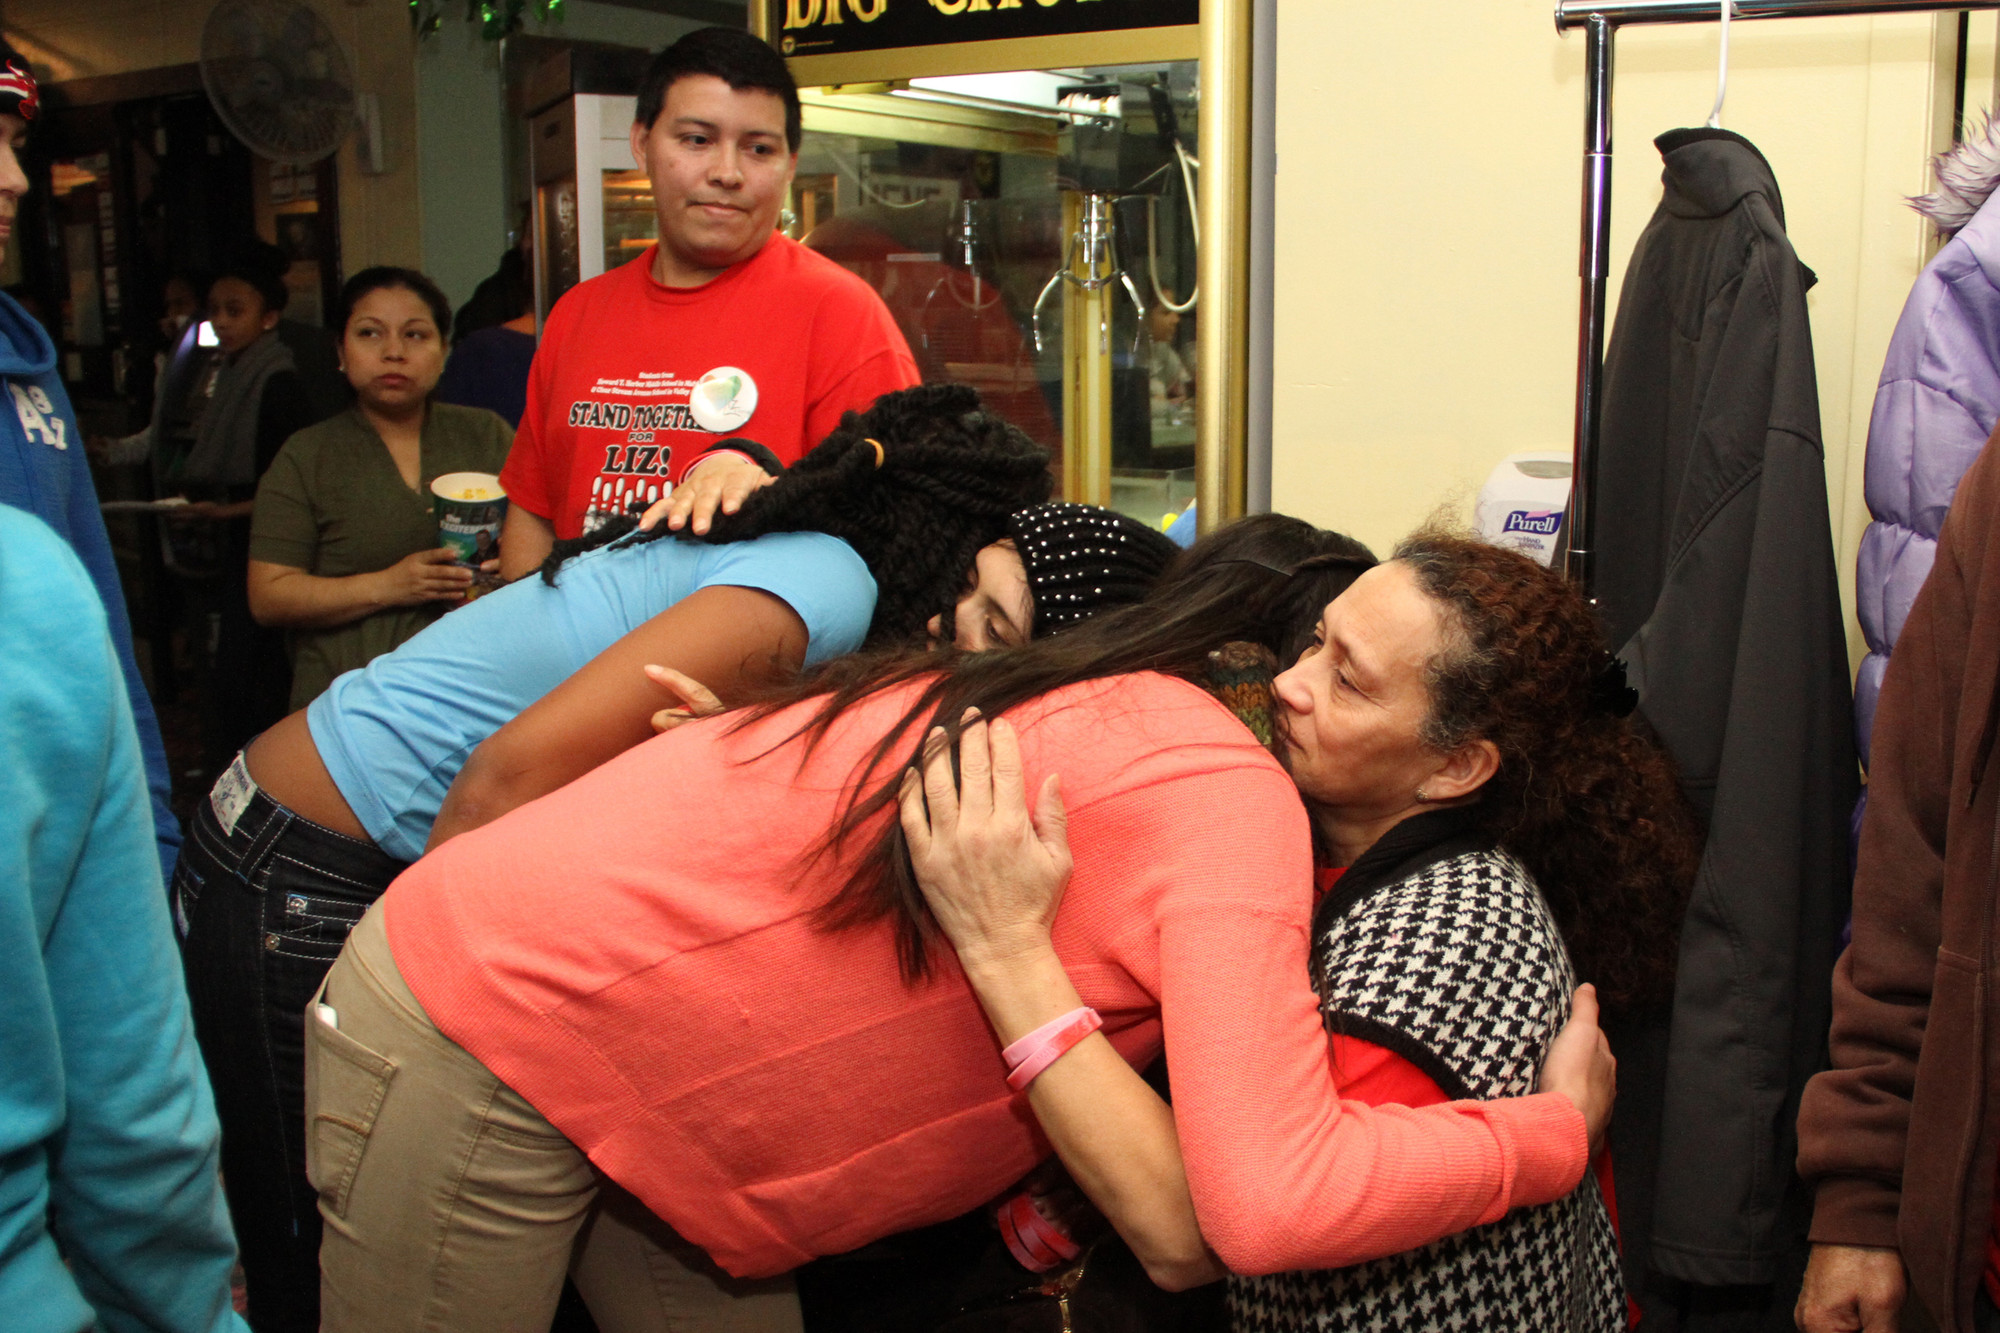 Clear Stream Avenue students Aryana Phillips and Brianna Custodio consoled the Garcia family during the event.